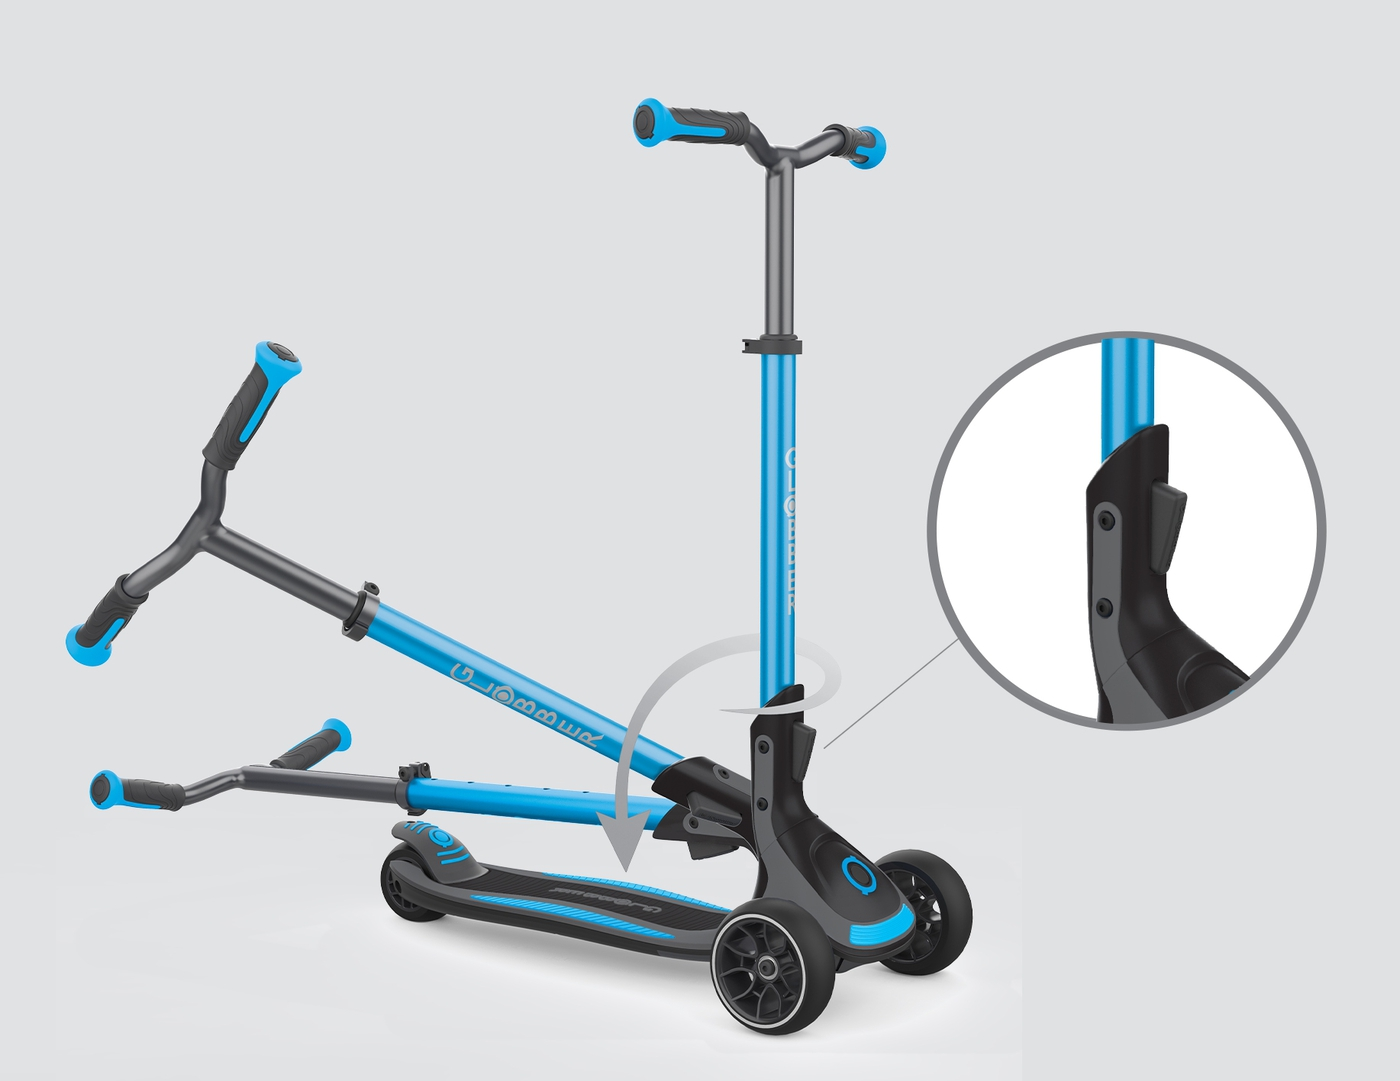 3-wheel foldable scooter for kids and teens